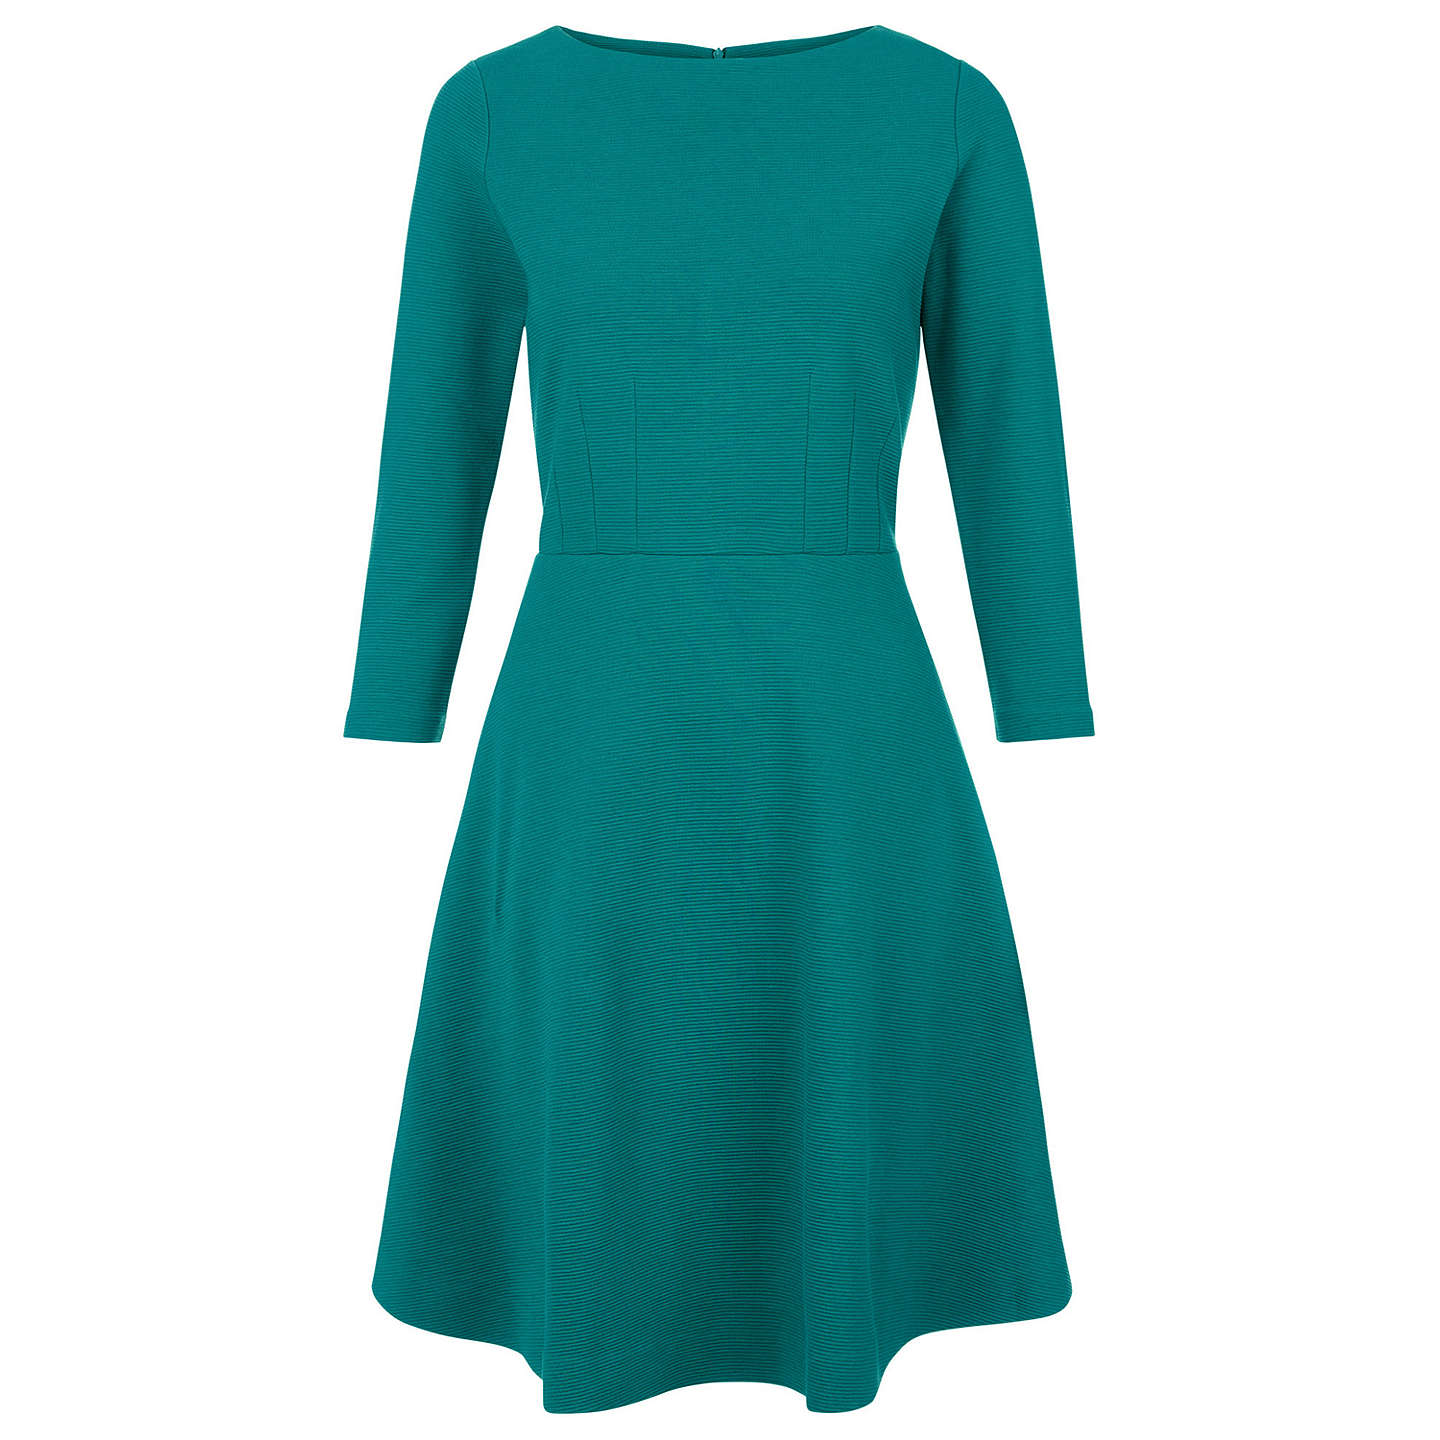 Offer: Hobbs Telula Dress, Emerald Green at John Lewis